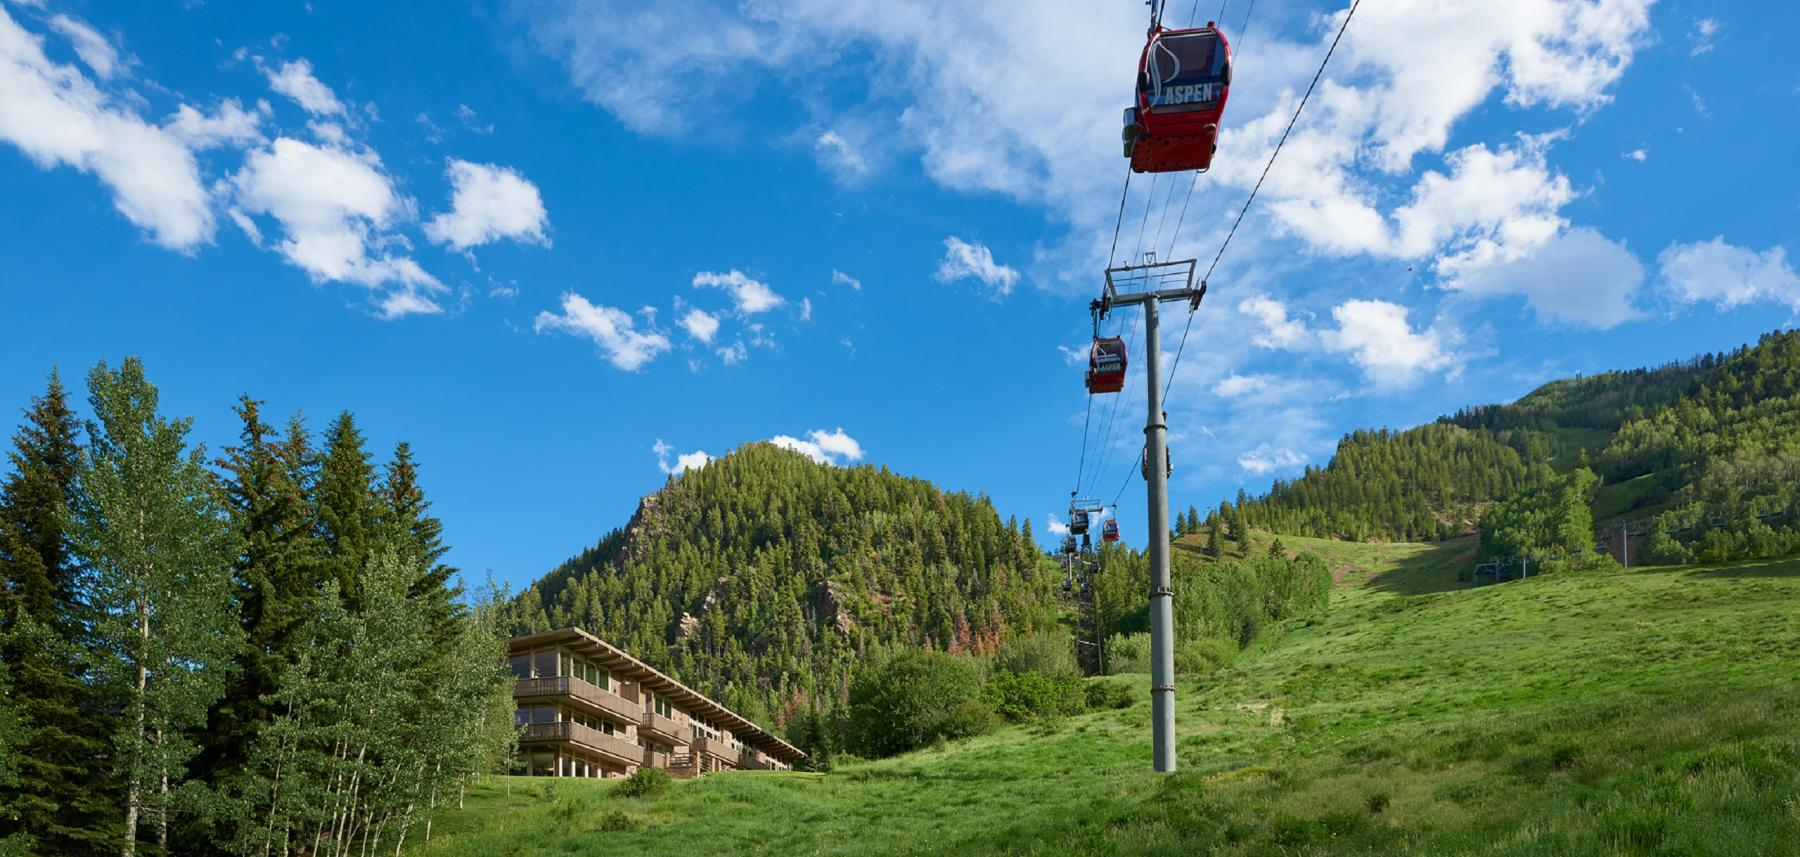 Condo Rentals on Aspen Mountain